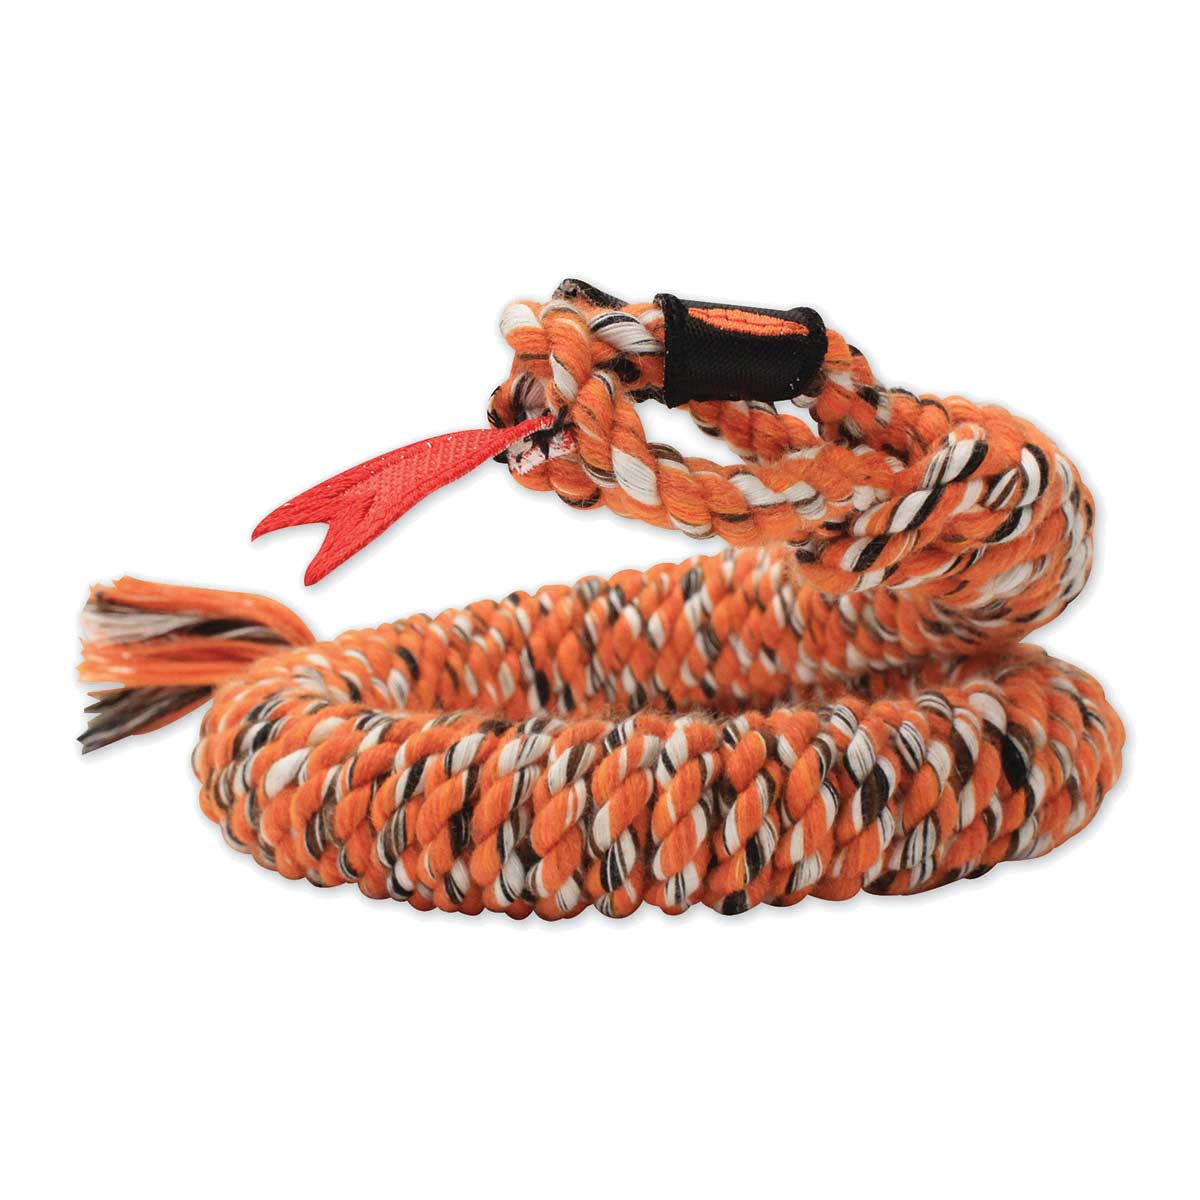 Mammoth Small 30 inch Snakebiter Rope Tug Toy for Dogs